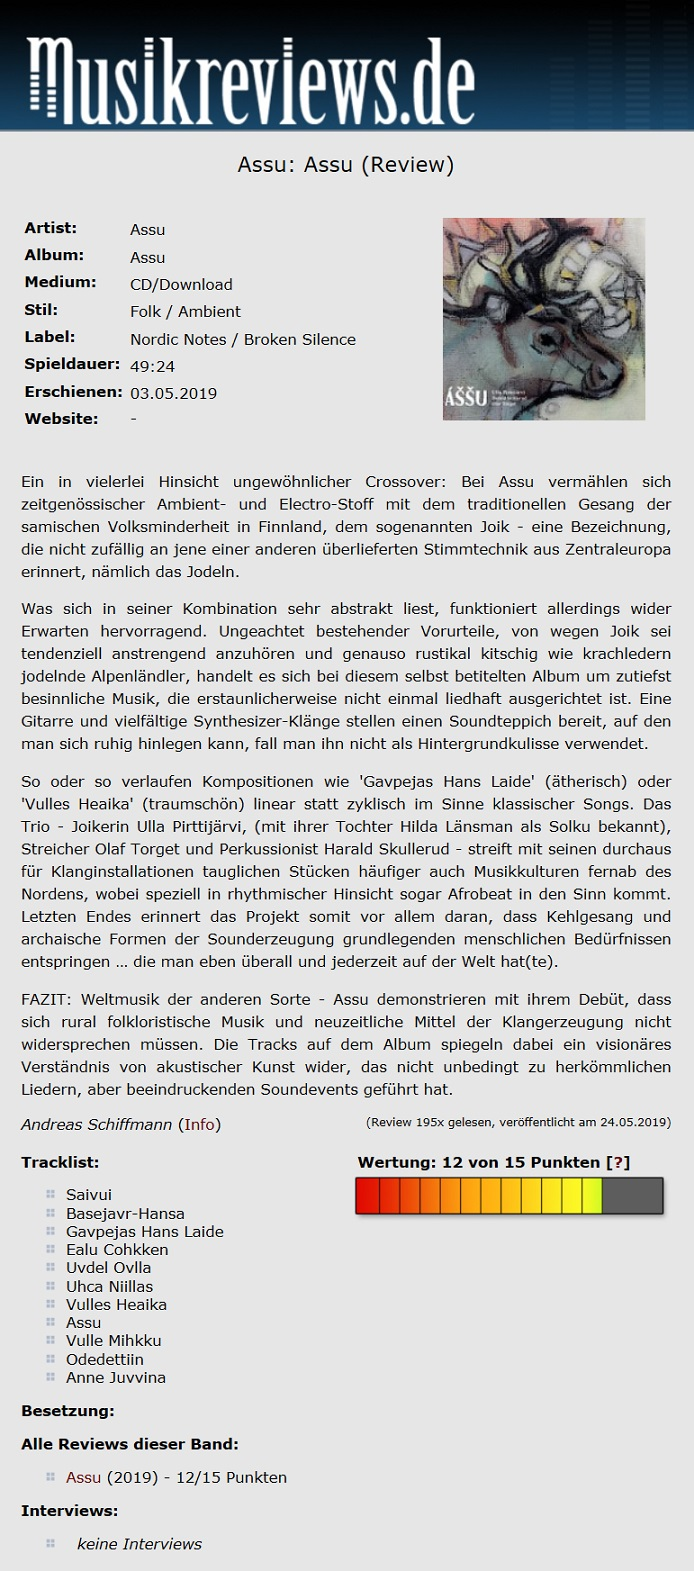 Musikreviews.de (Germany), 24.5.2019